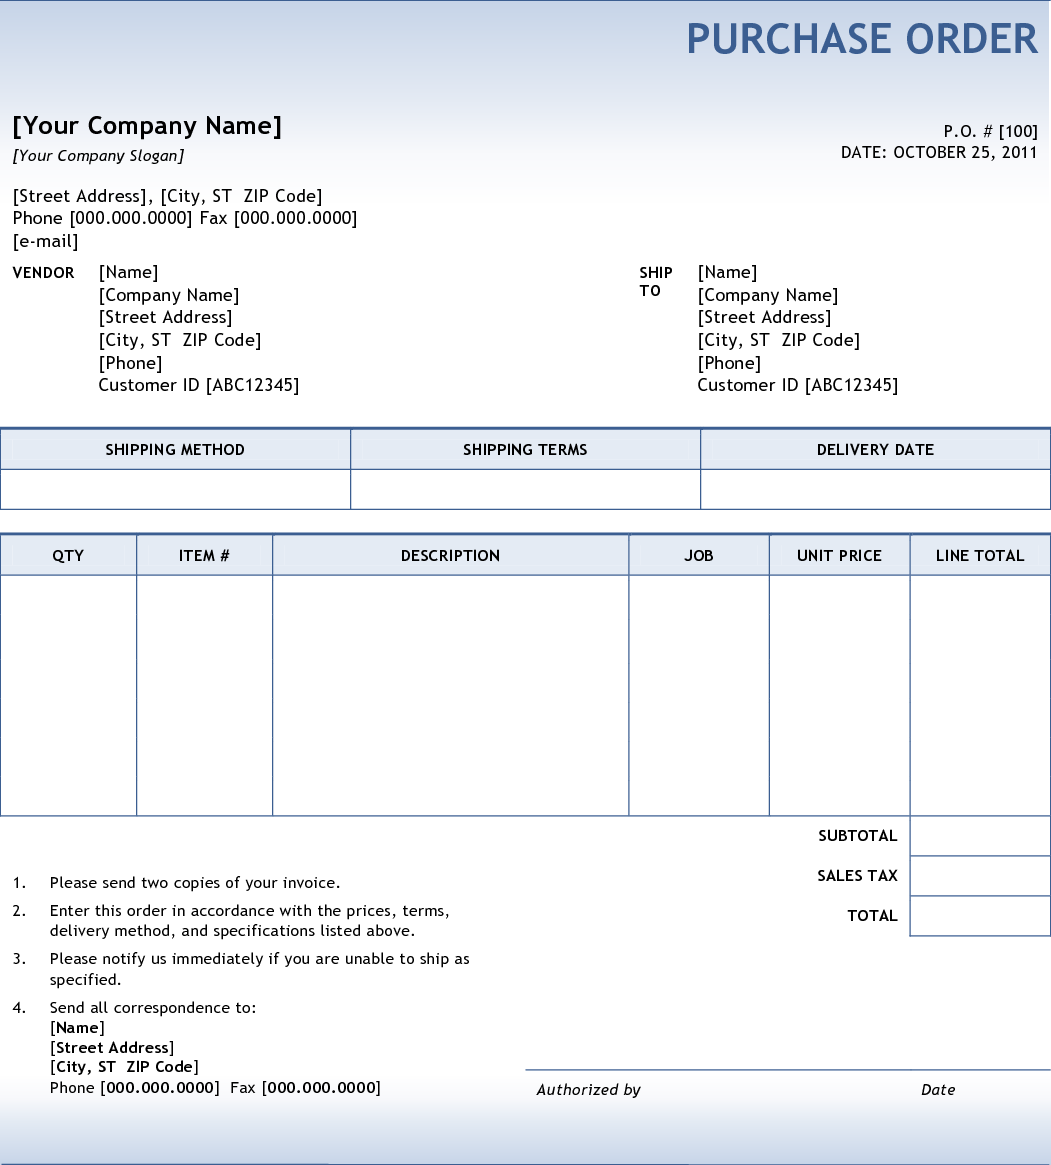 Invoice Template Examples Word All You Ever Needed To Know About Purchase Orders Goodwill Receipt Pdf with Receipt Creator App Pdf Purchase Orders Are Documents Sent From A Buyer To A Supplier With A  Request For An Order The Type Of Item The Quantity And Agreed Upon Price  Are  Simple Receipt Form Excel